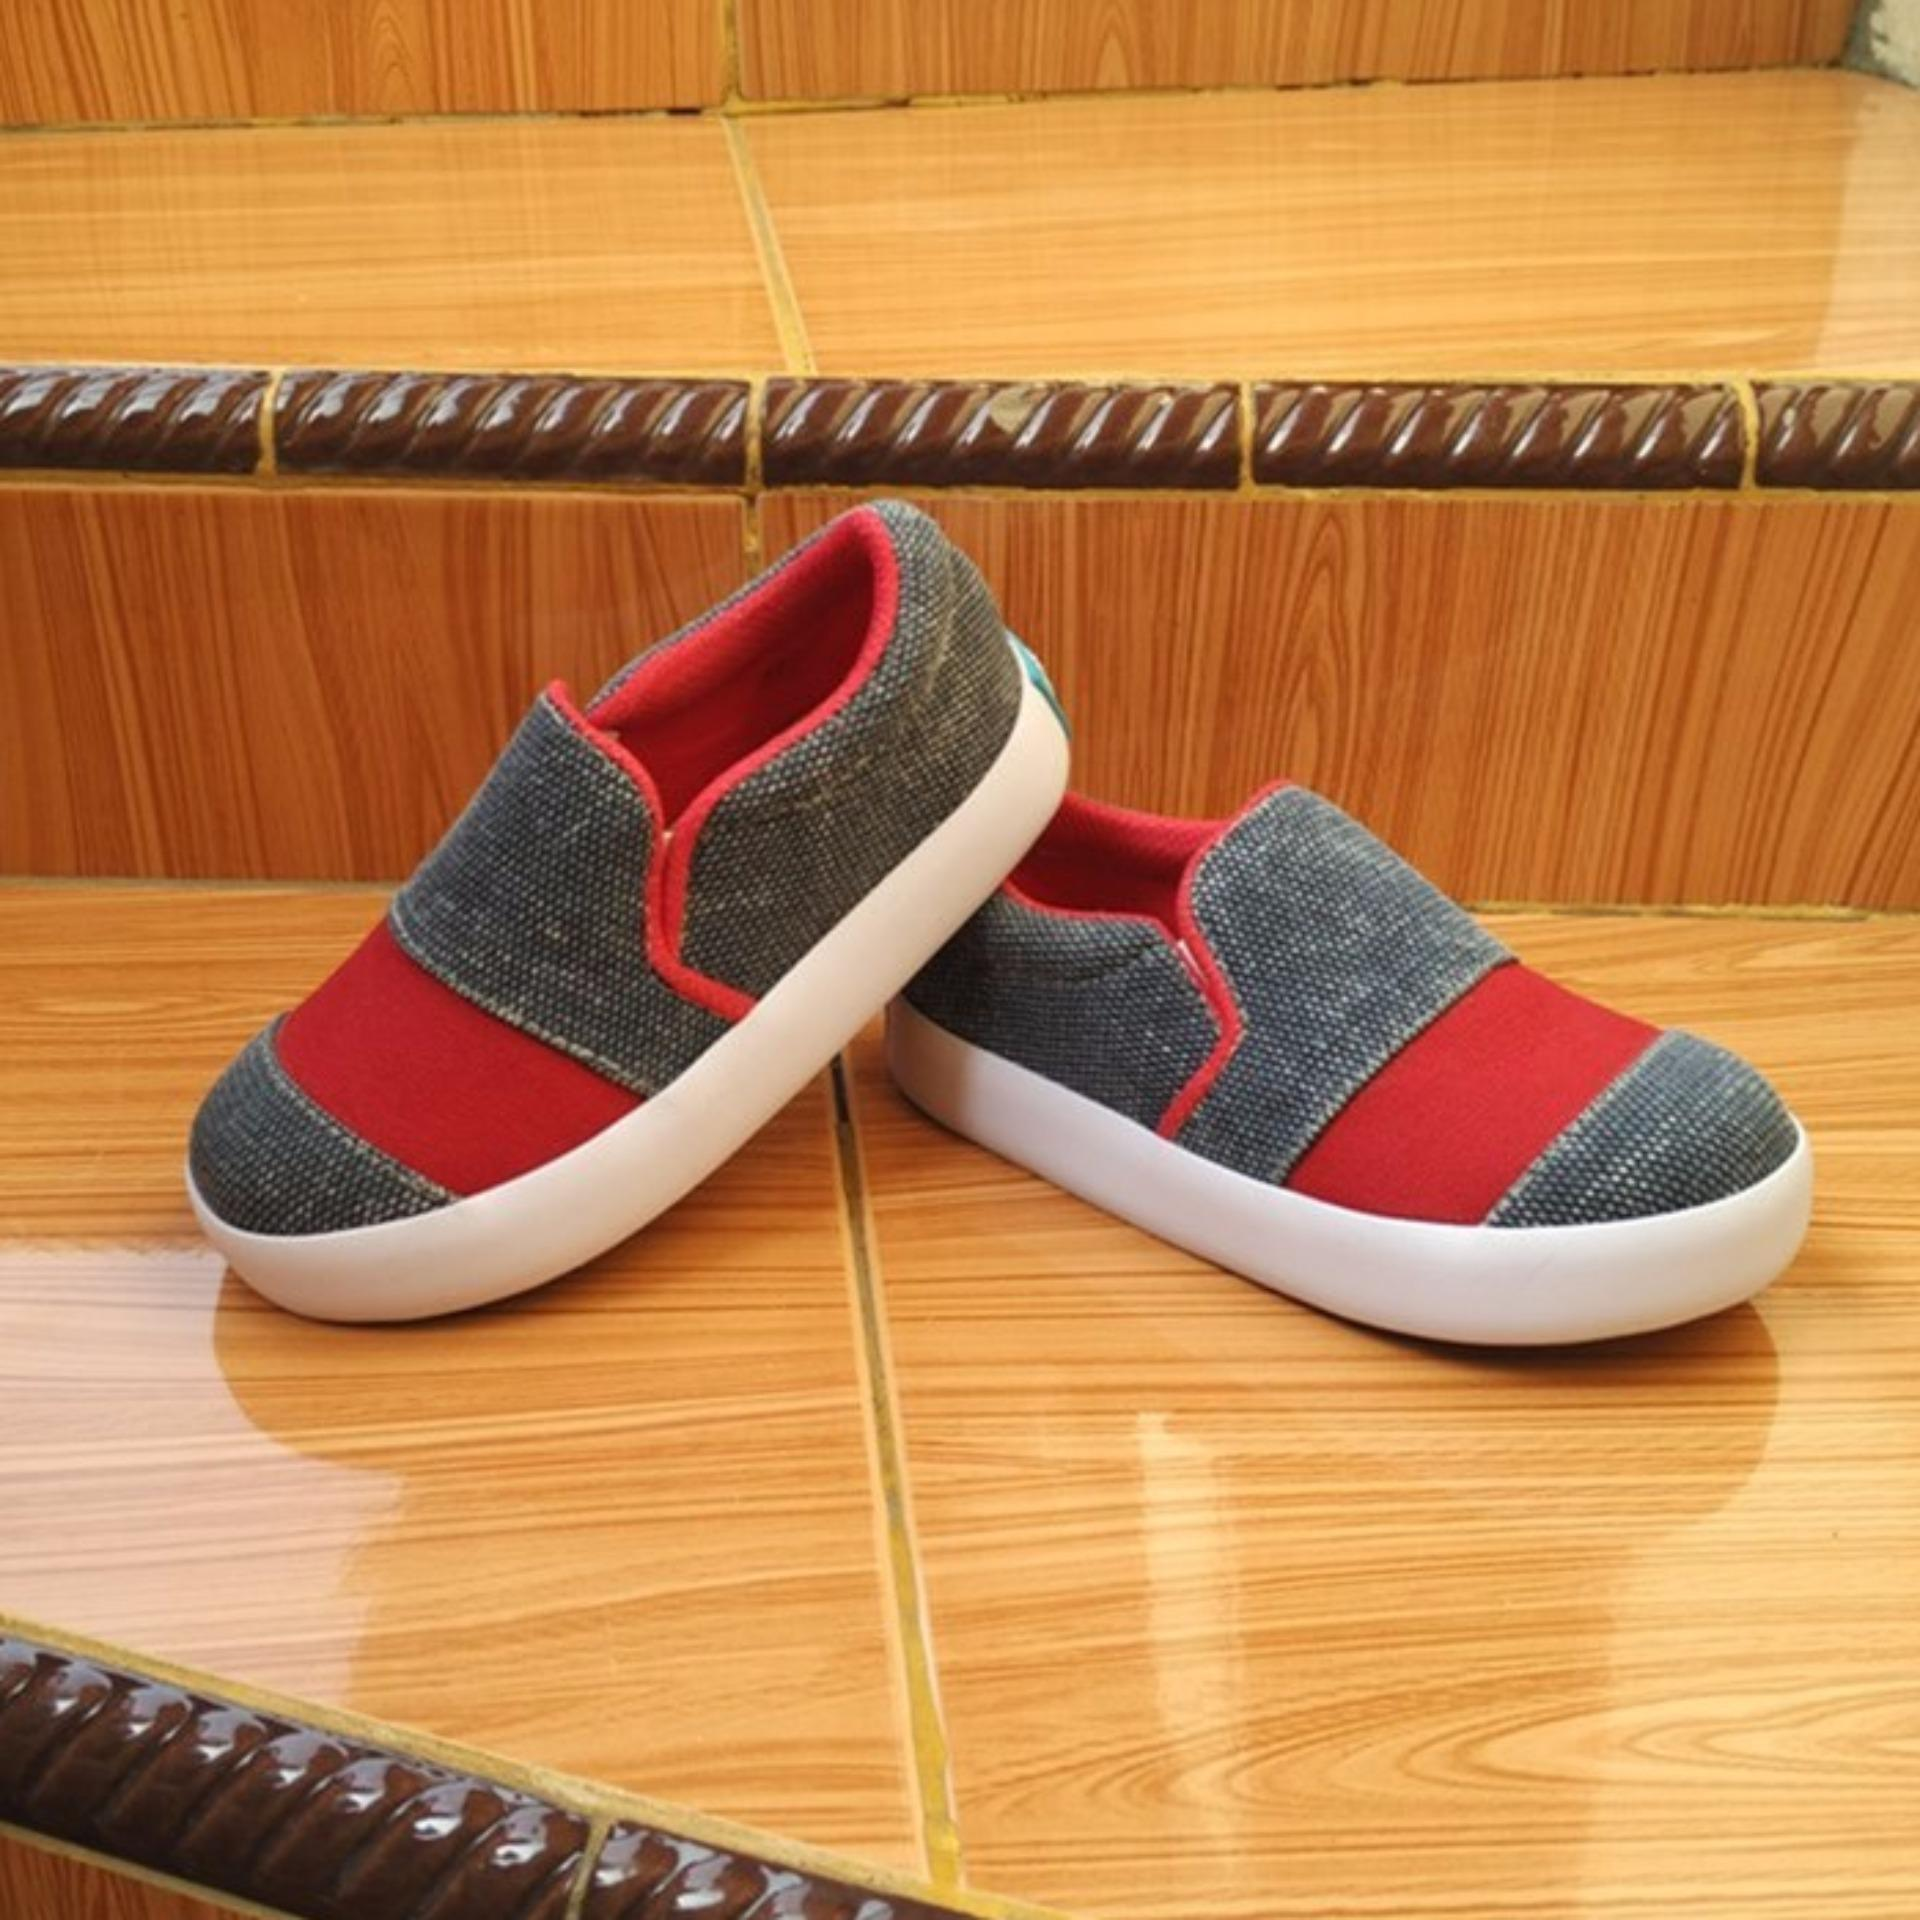 Sepatu Anak Slip On Murah Kanvas Casual Trendy By Shuku Asli